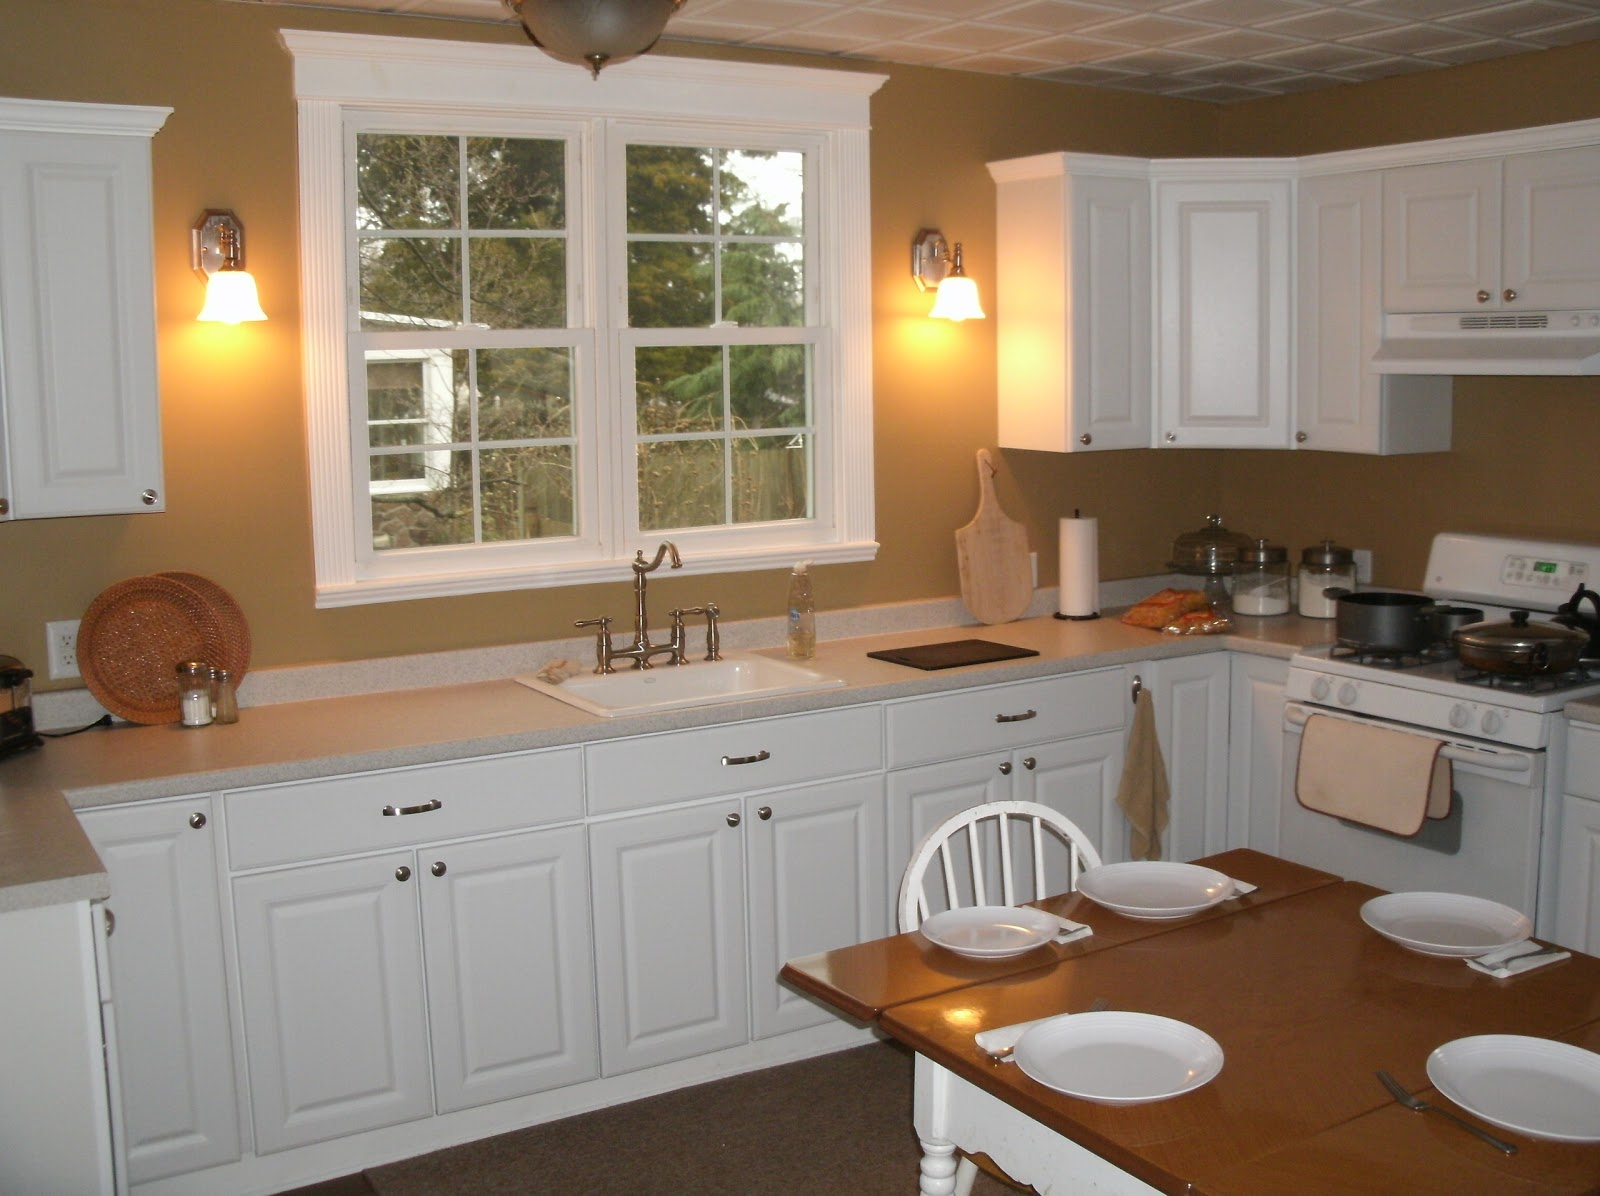 Home remodeling and improvements tips and how to 39 s for Small kitchen renovations